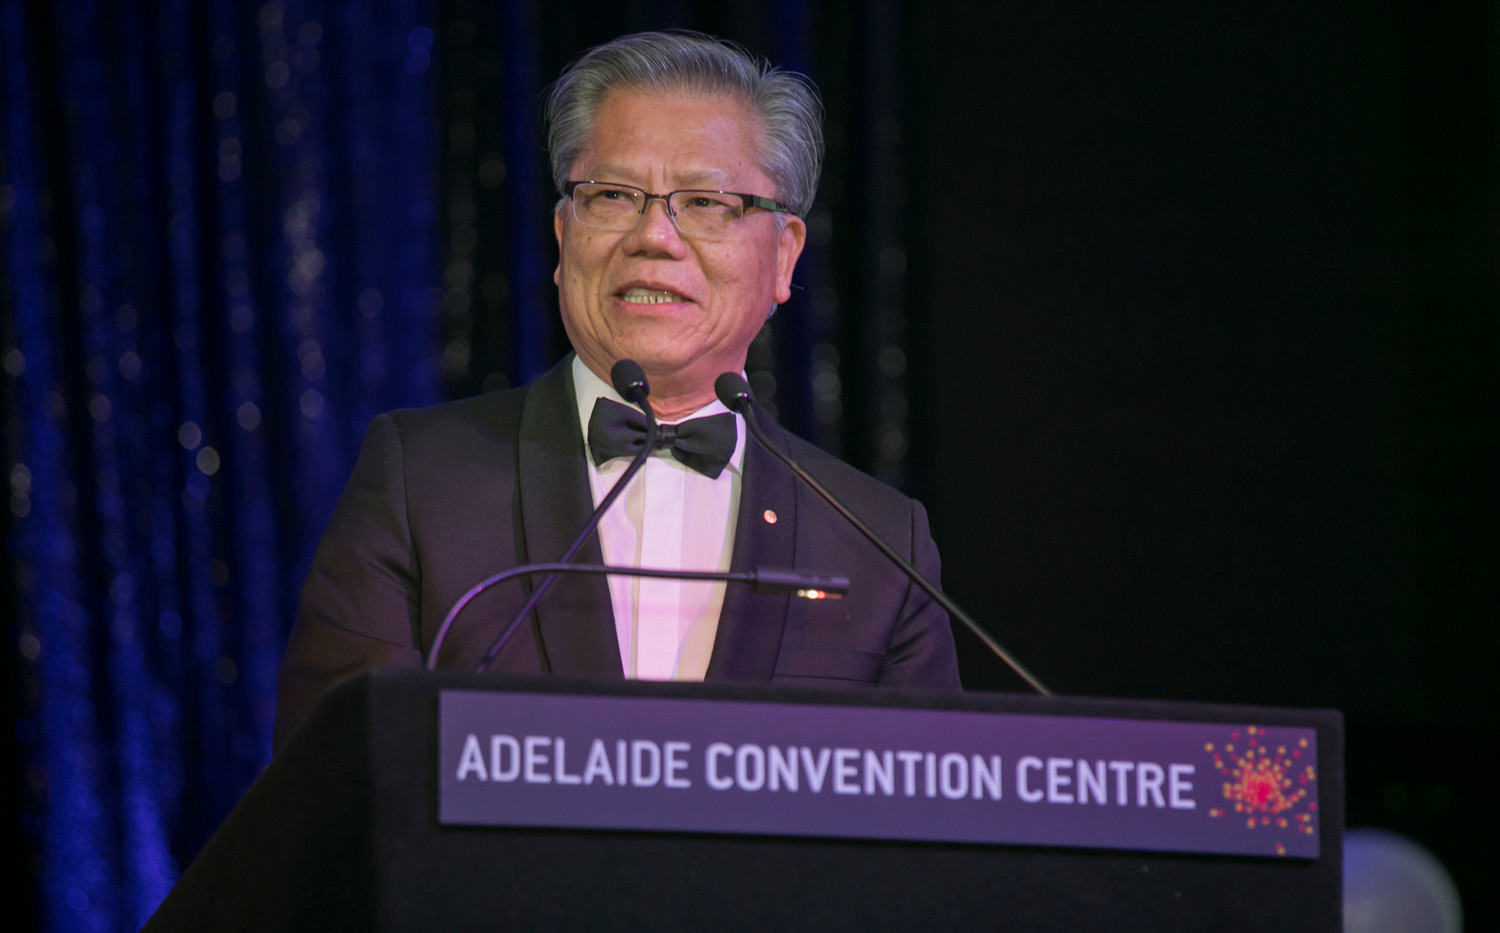 Adelaide Convention Centre Awards Ceremonies